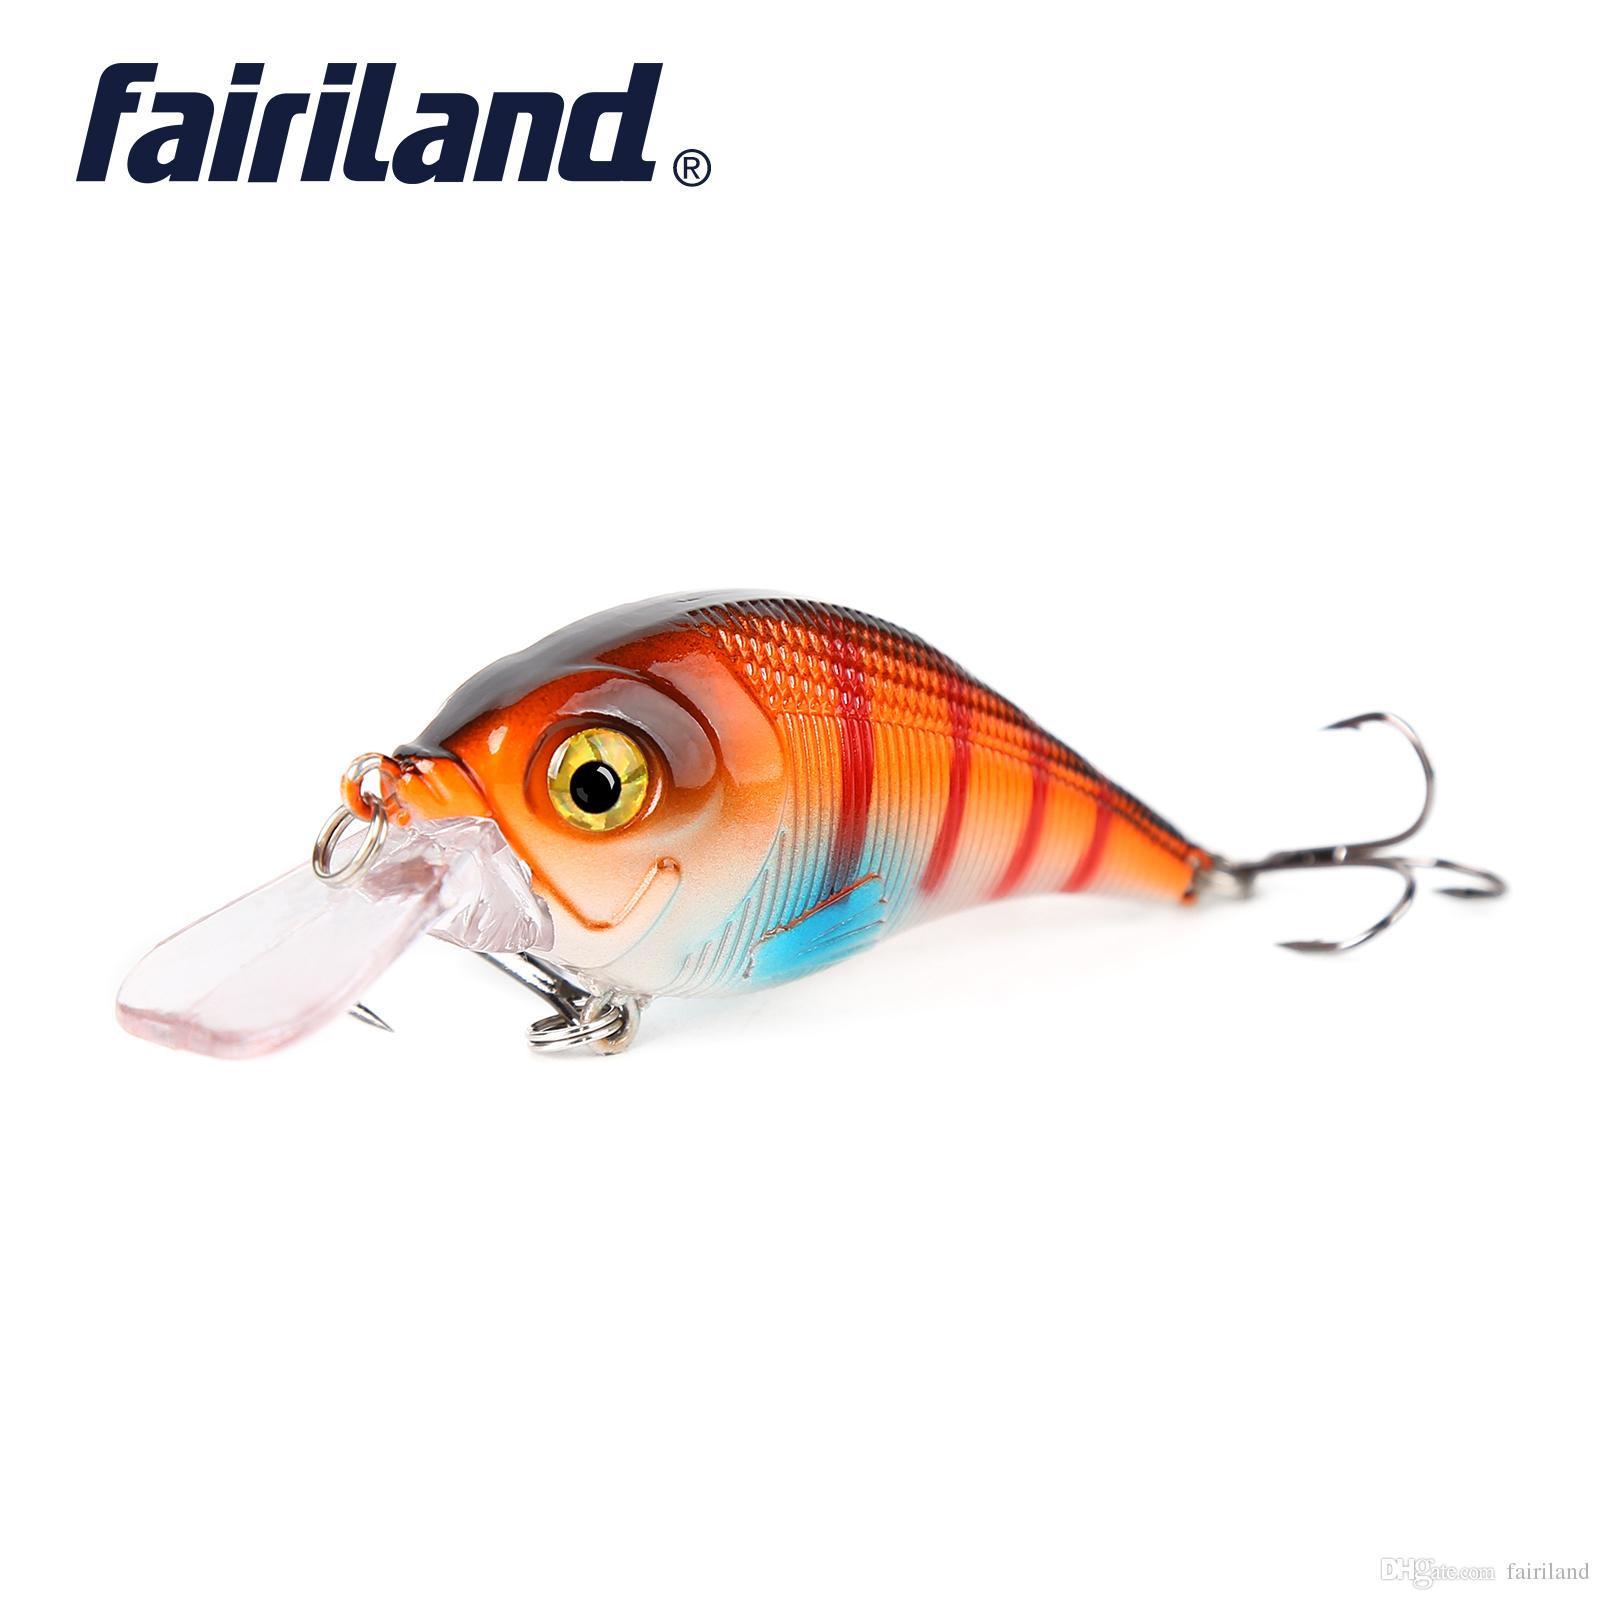 1pcs Lifelike Minnow 11g/0.39oz 6cm/2.4in Hard Baits Minnow Fishing Lure 10 colors Float Artificial Crankbait Fishing Wobblers